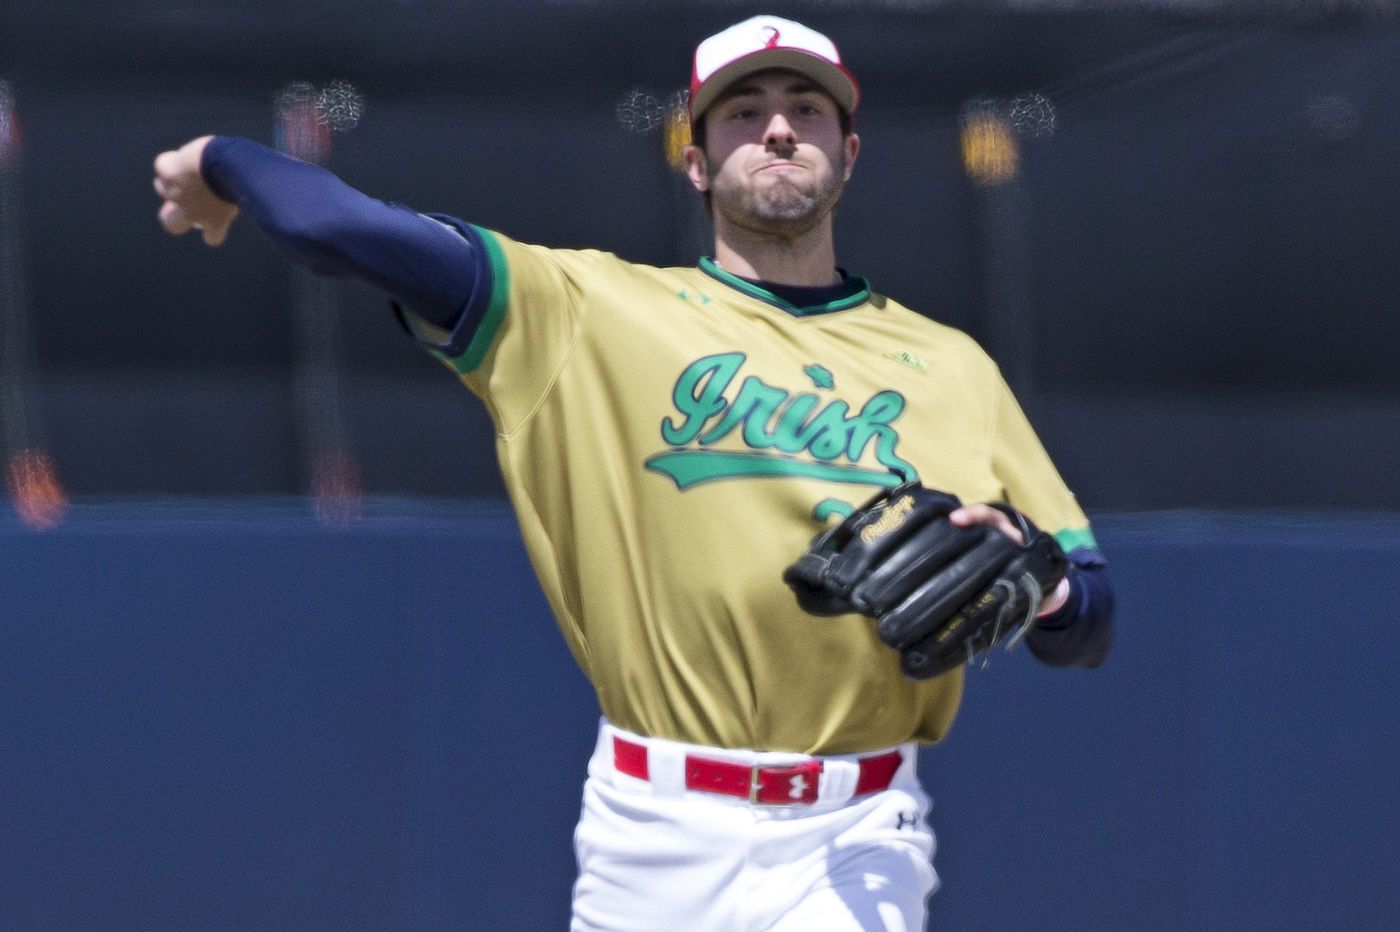 Like Alec Bohm, Phillies think Notre Dame's Matt Vierling can move quick to majors